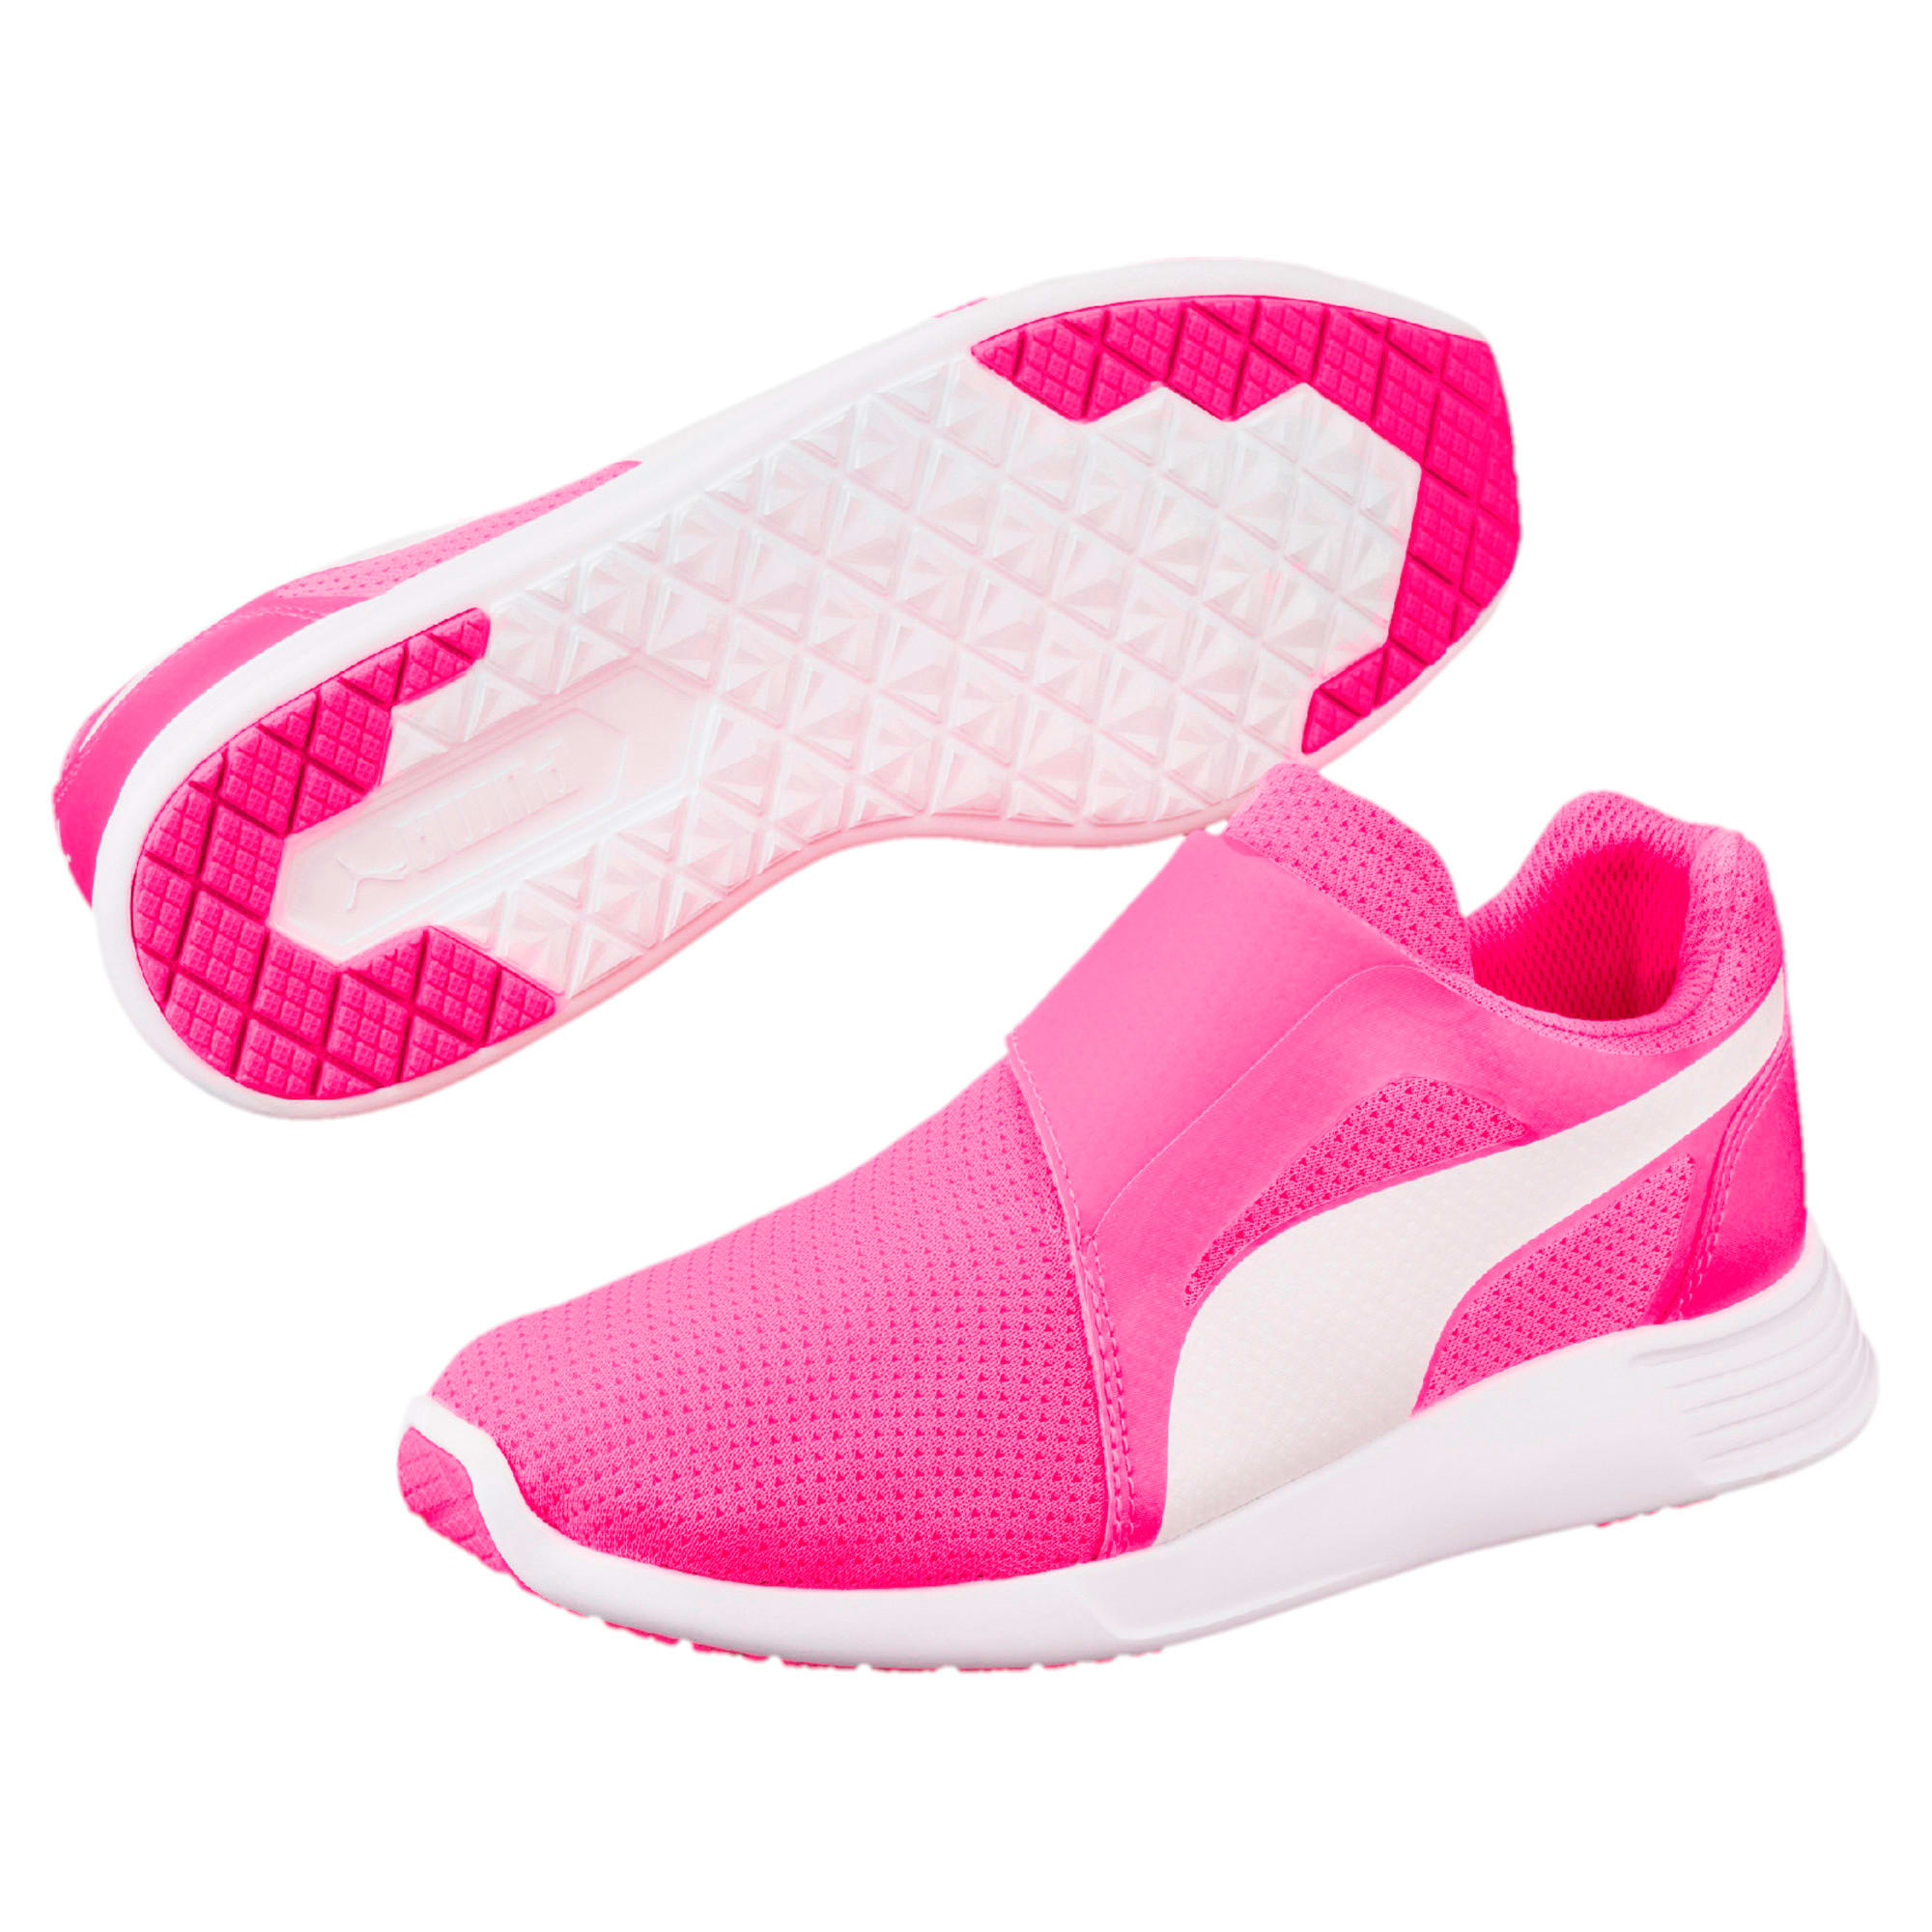 Thumbnail 6 of ST Trainer Evo AC Kids' Trainers, KNOCKOUT PINK-Puma White, medium-IND